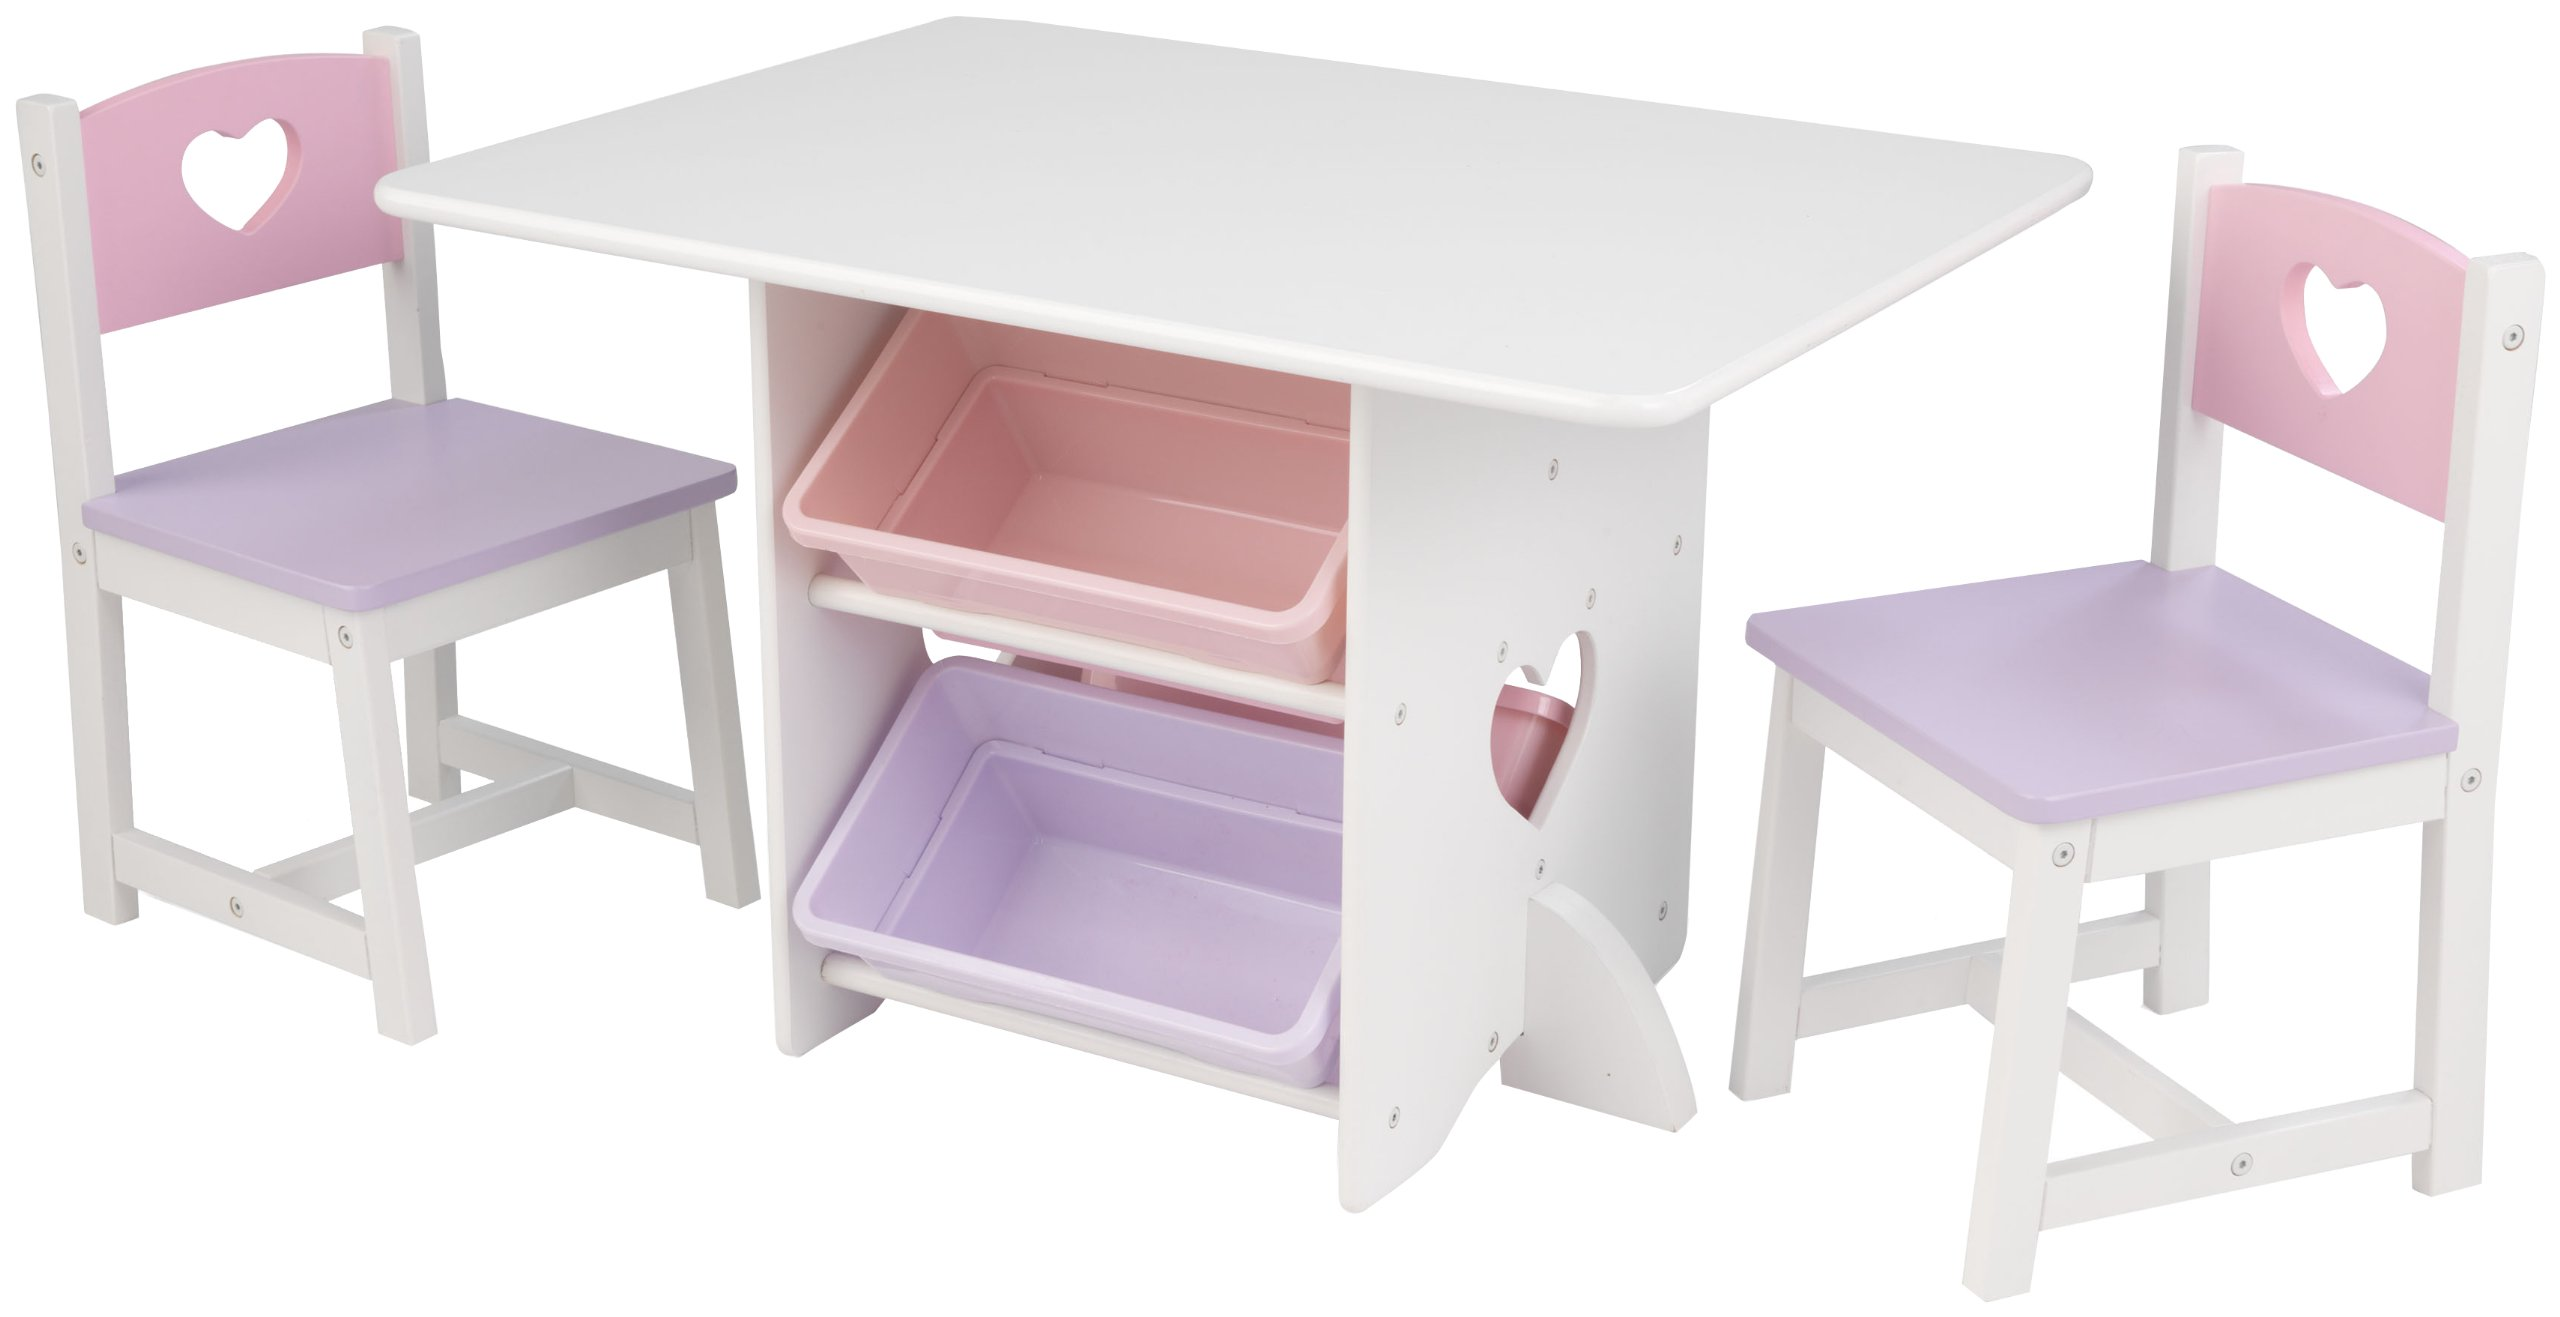 Phenomenal Kidkraft 26913 Heart Wooden Table 2 Chair Set With Storage Bins Kids Childrens Playroom Bedroom Furniture White Pastel Best Image Libraries Barepthycampuscom